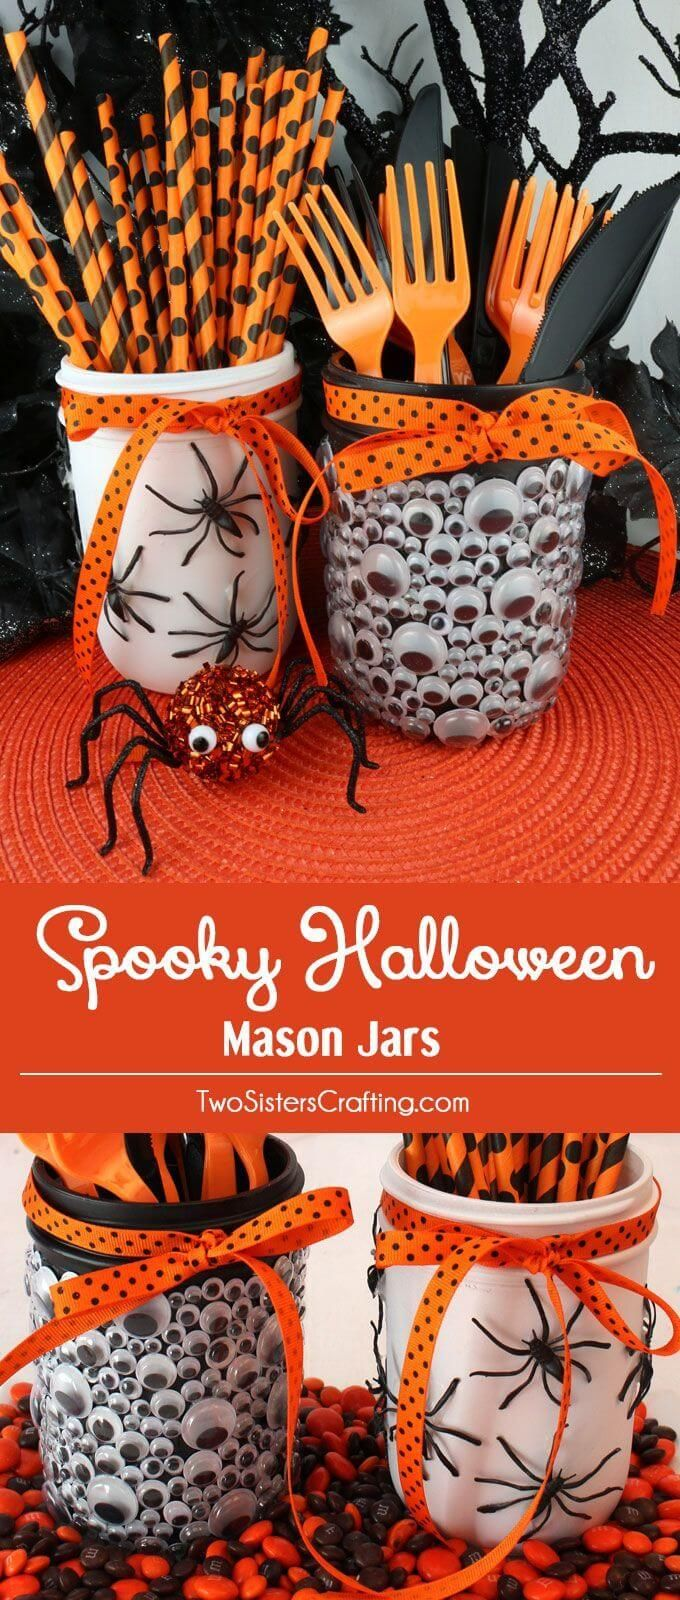 30 Creative DIY Mason Jar Halloween Crafts to Spice Up Your Fall Decor